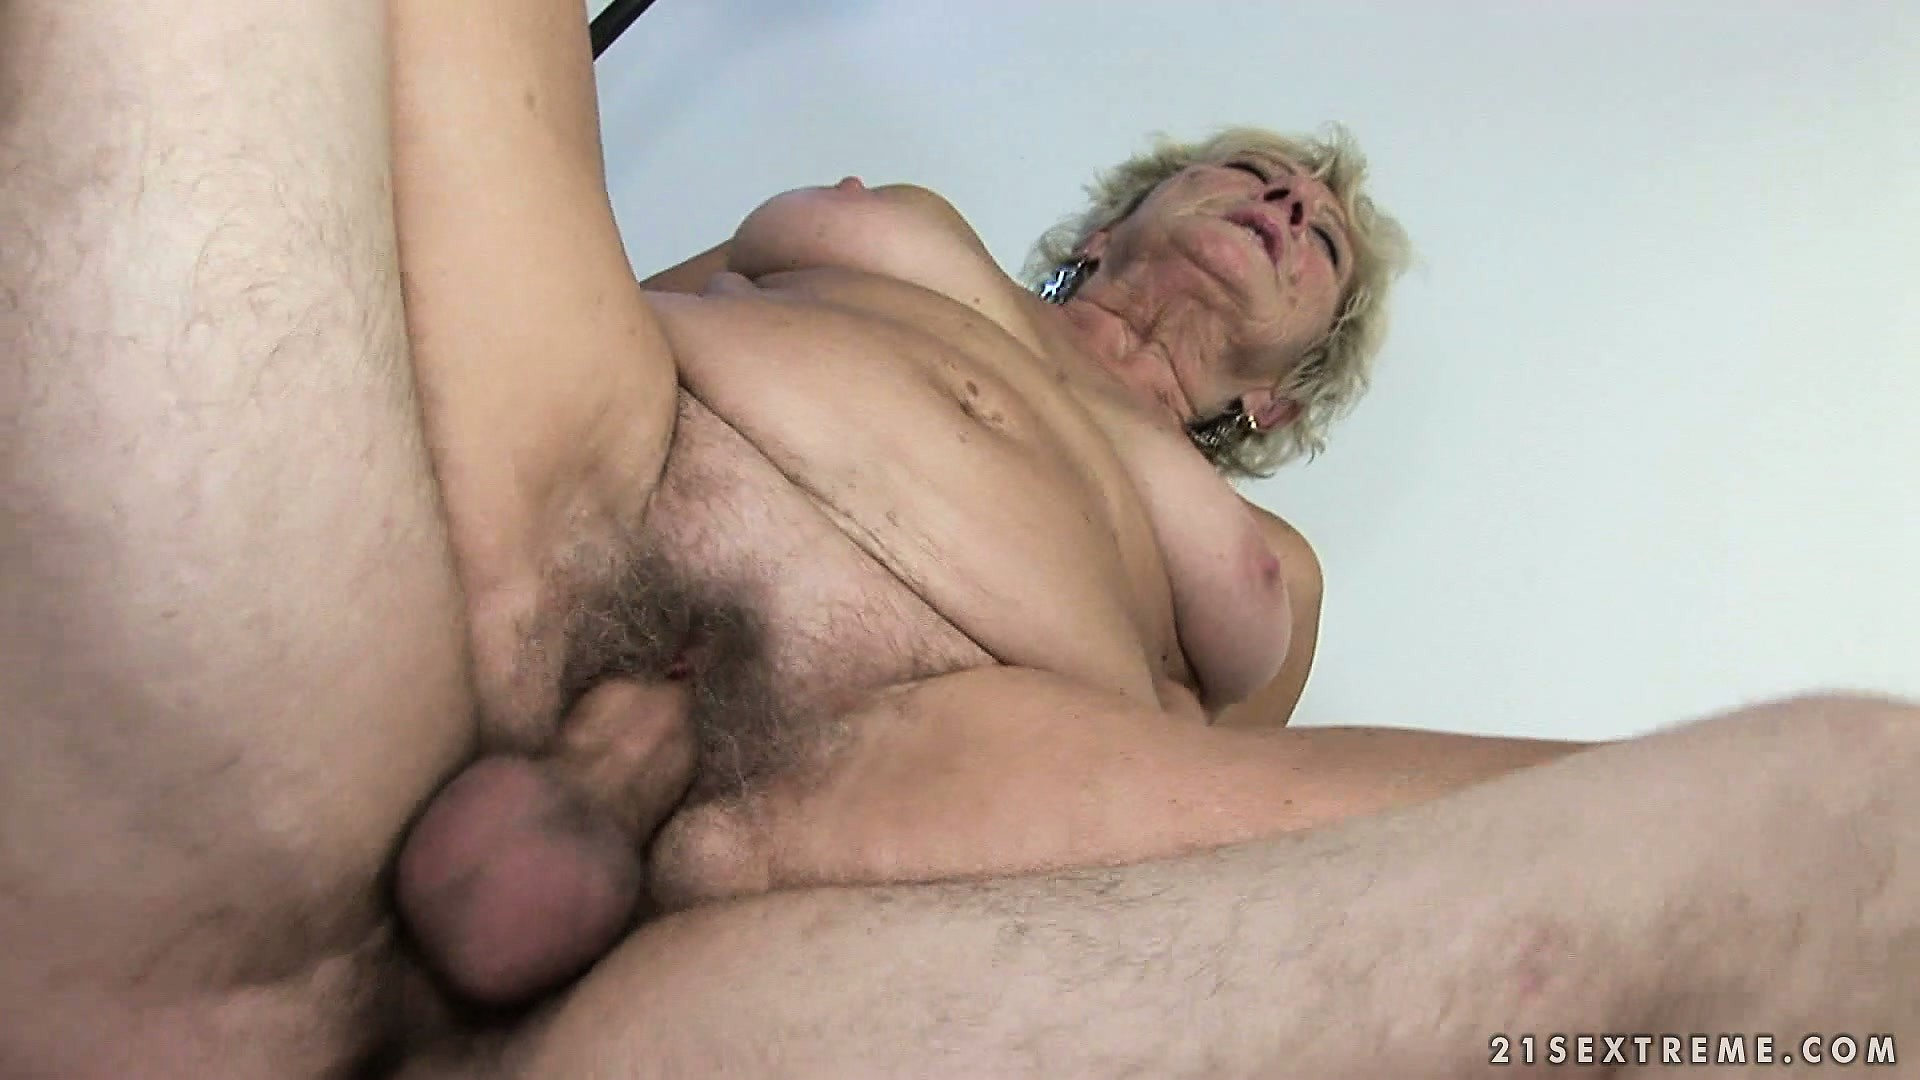 Porn Tube of Blonde Granny Gets Filled In Her Furry Bush With A Nice Young Fuck Stick